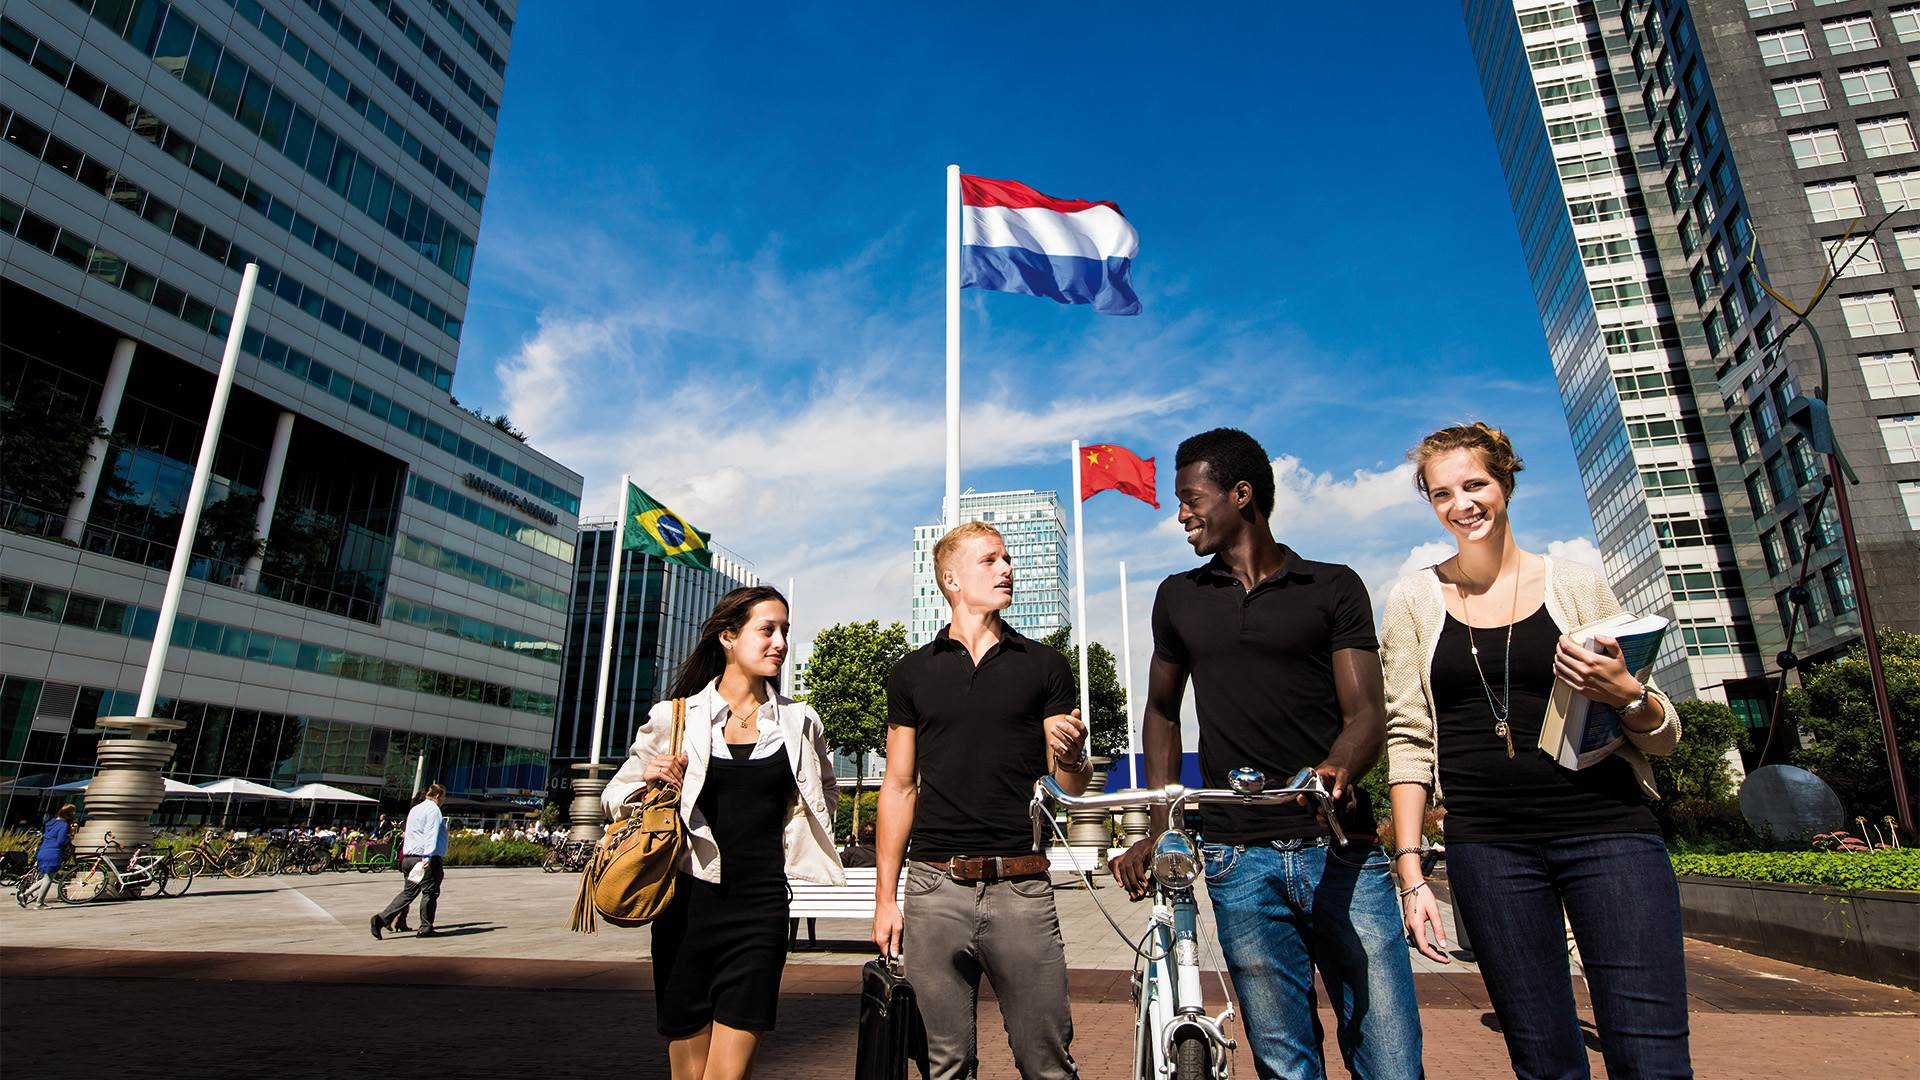 hogeschool van amsterdam,hva iov fellows,economie en management,zuid-as,ibs voltijd,international business management